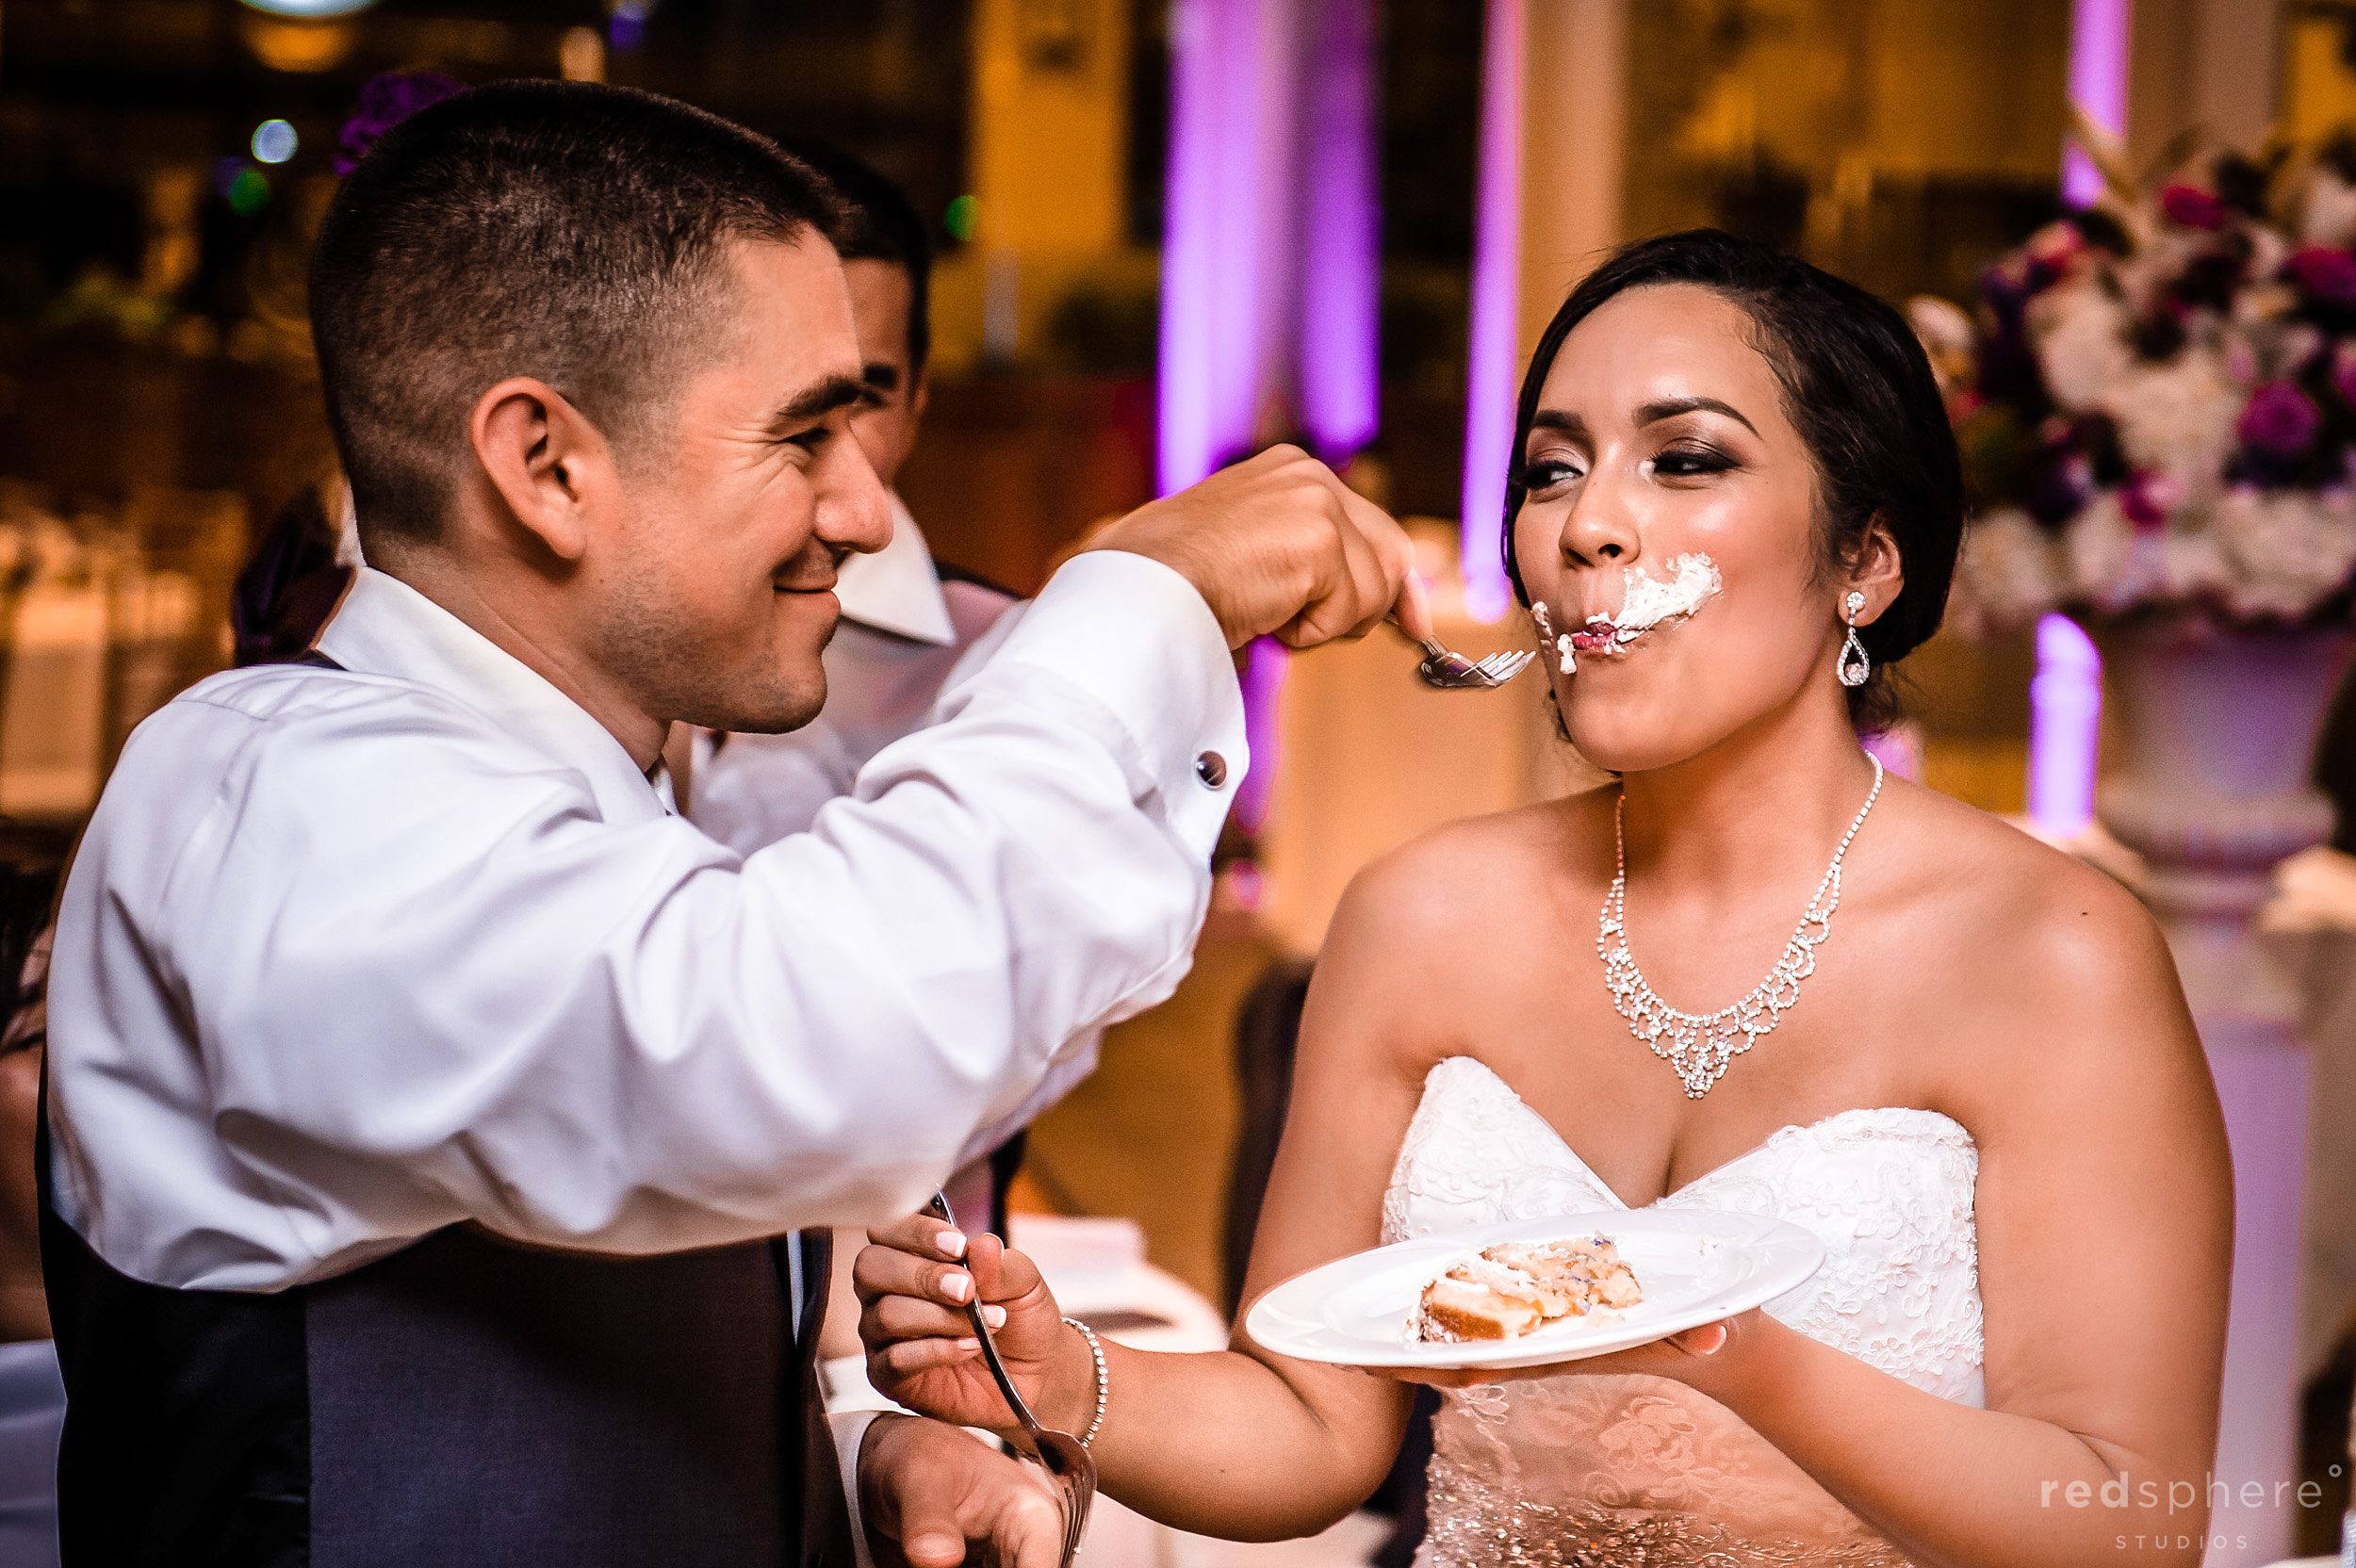 Groom Feeding the Bride Some Cake at Palo Alto Hills Golf Club Reception